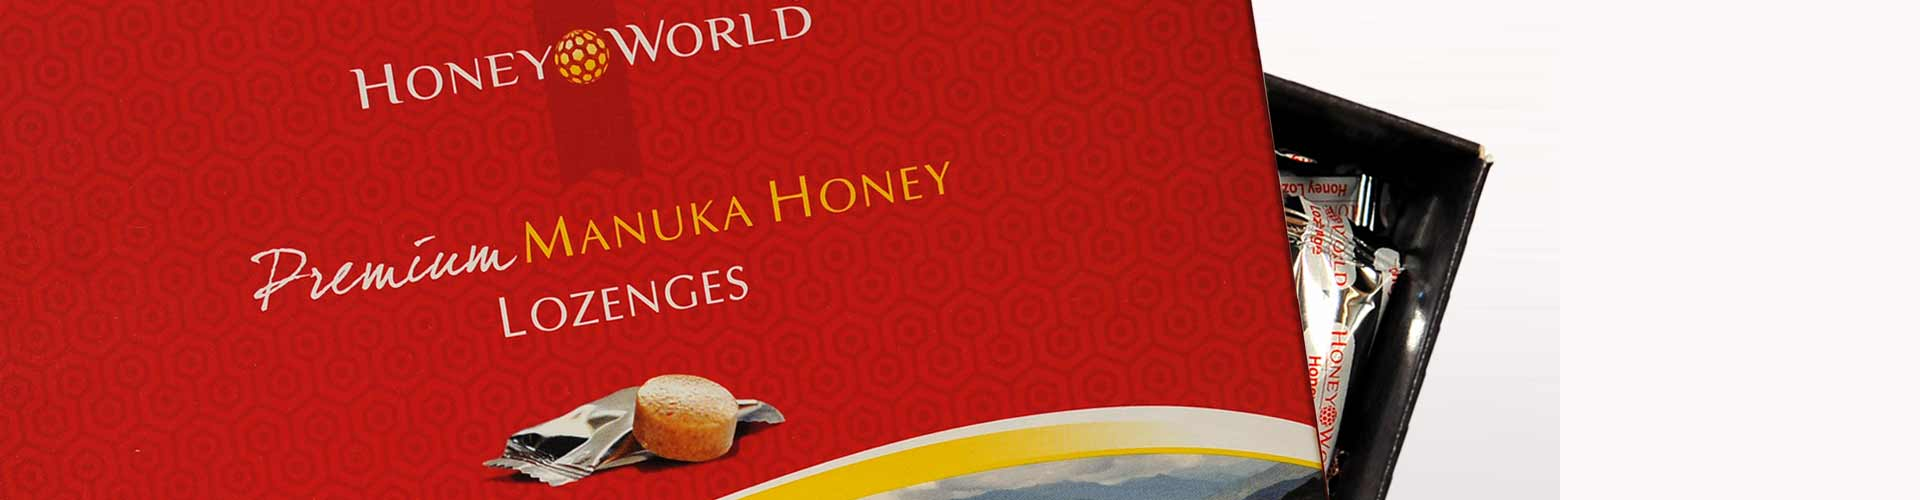 HoneyWorld Manuka Honey Gift Box